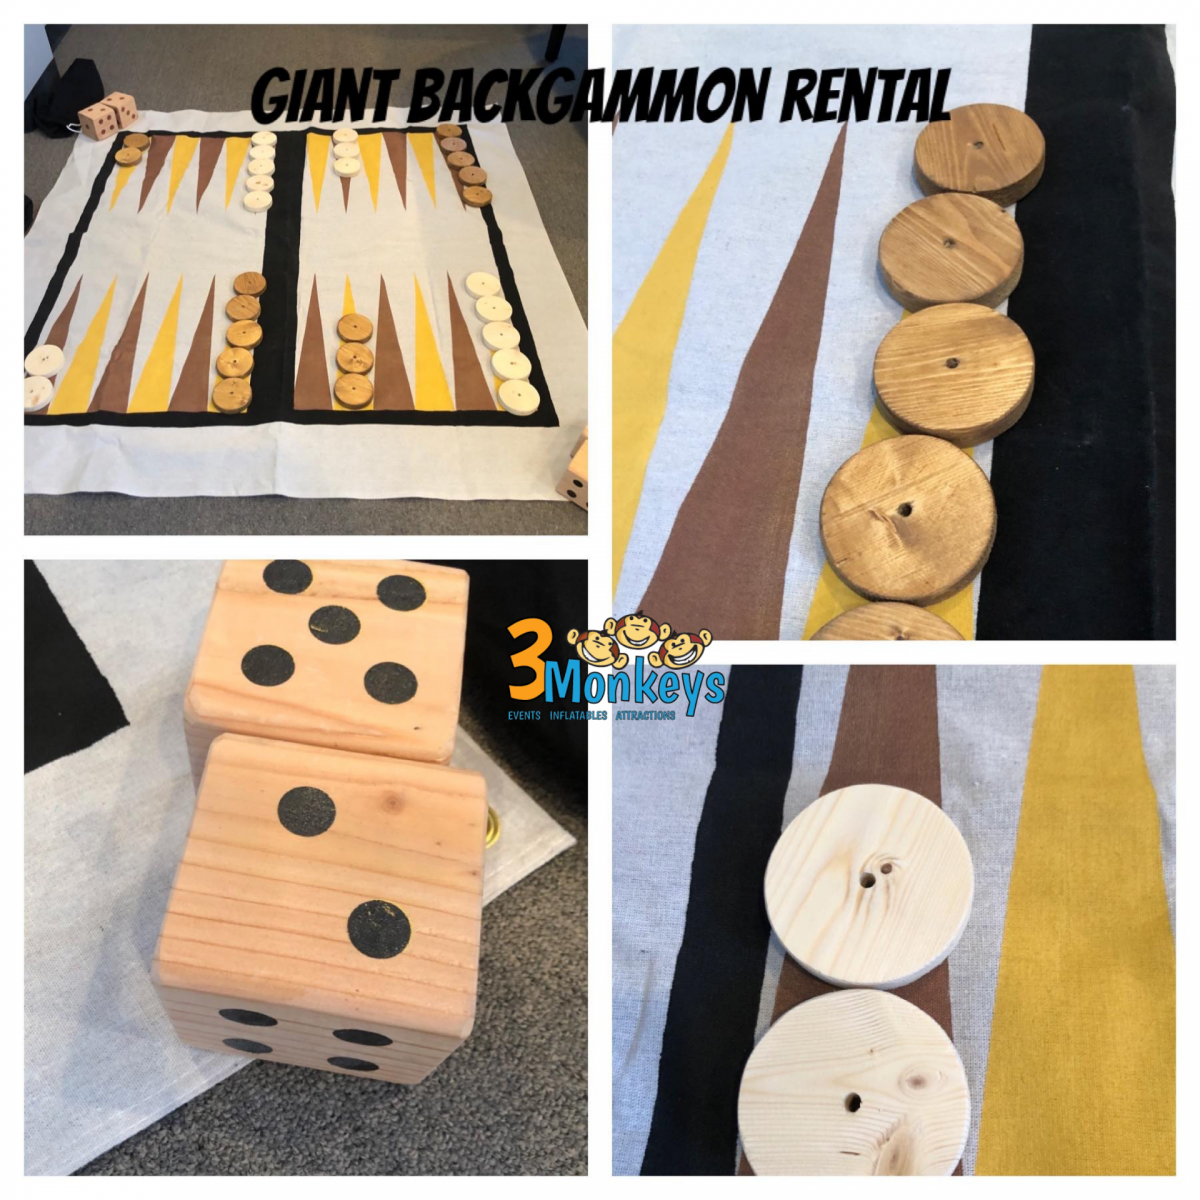 Giant Backgammon Game Rental Pennsylvania Event Rentals